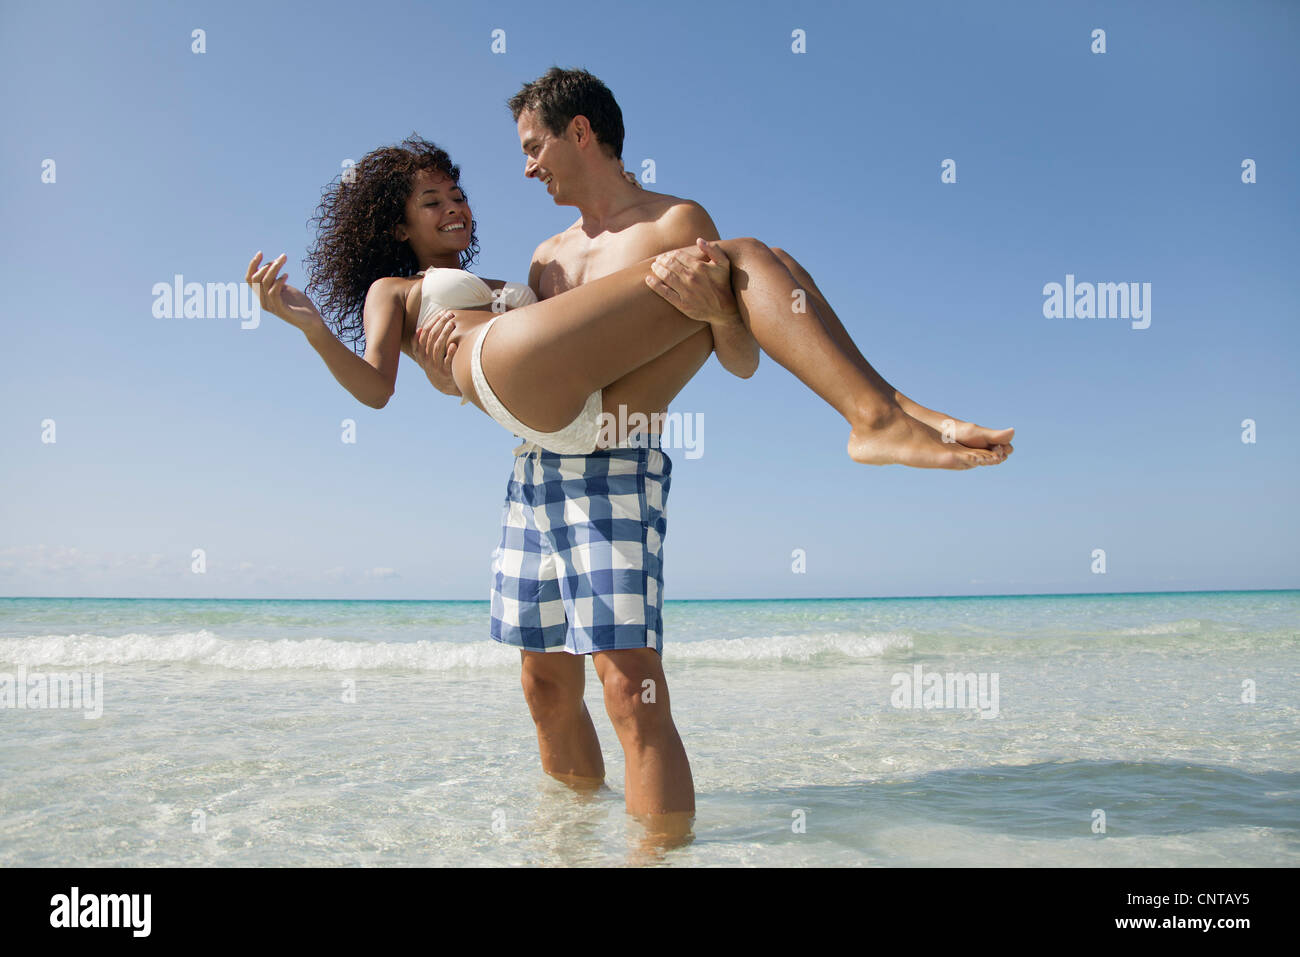 Couple together at the beach, man carrying woman - Stock Image